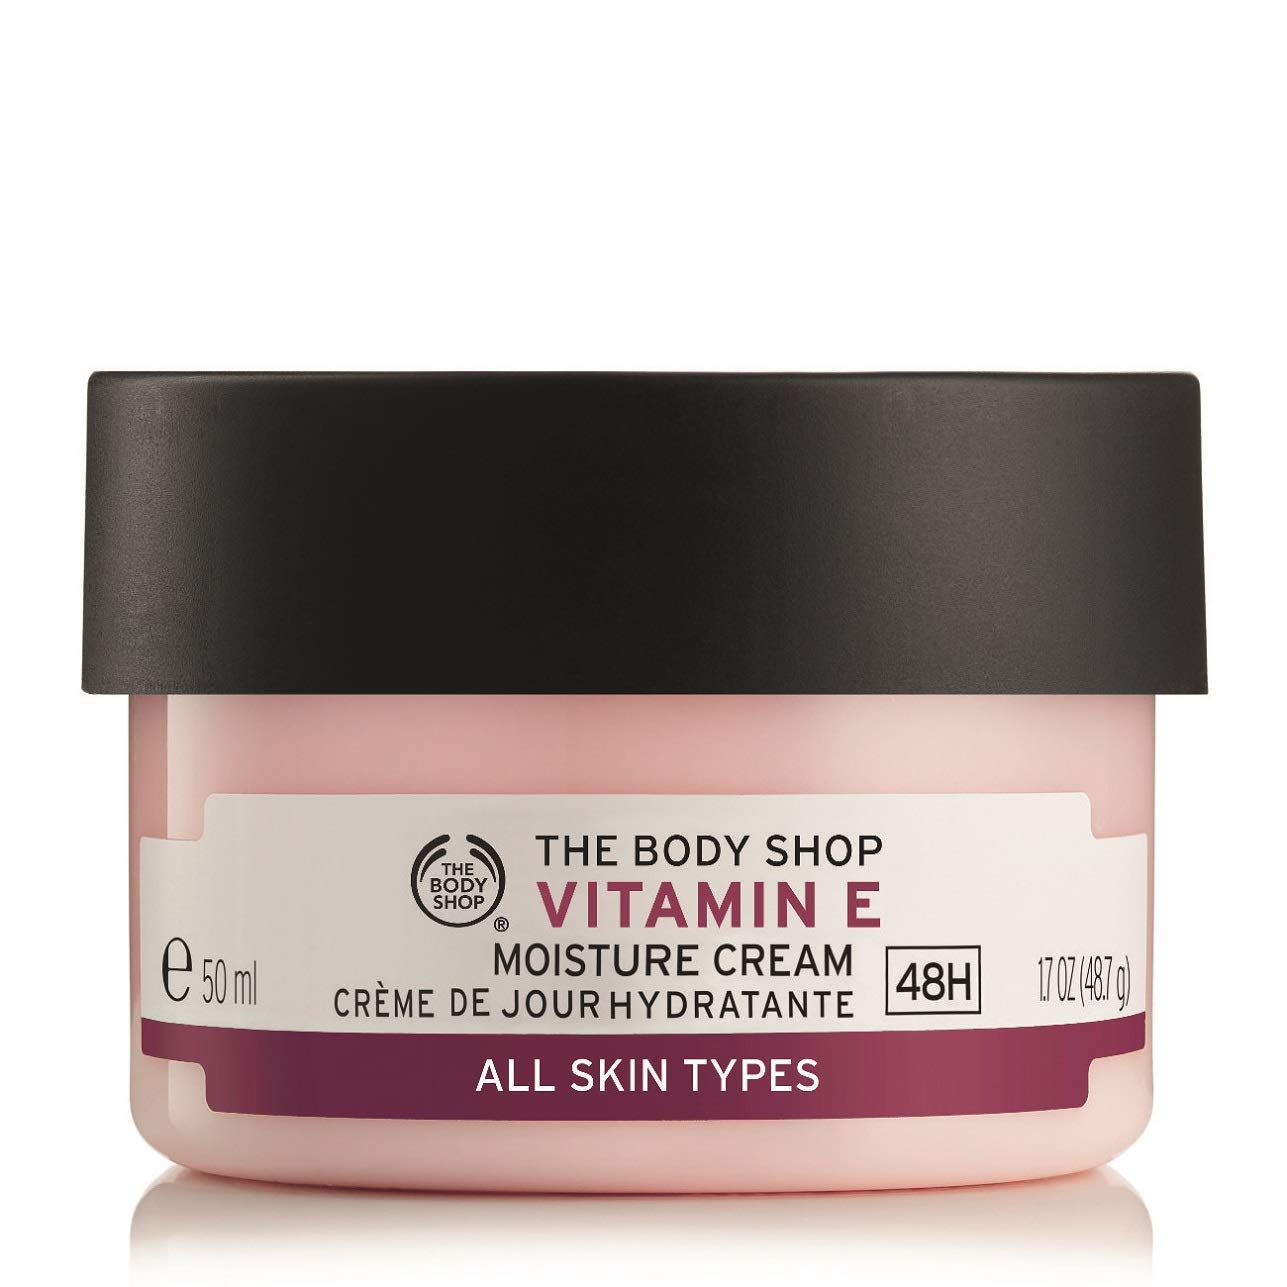 The Body Shop Vitamin E Moisture Cream